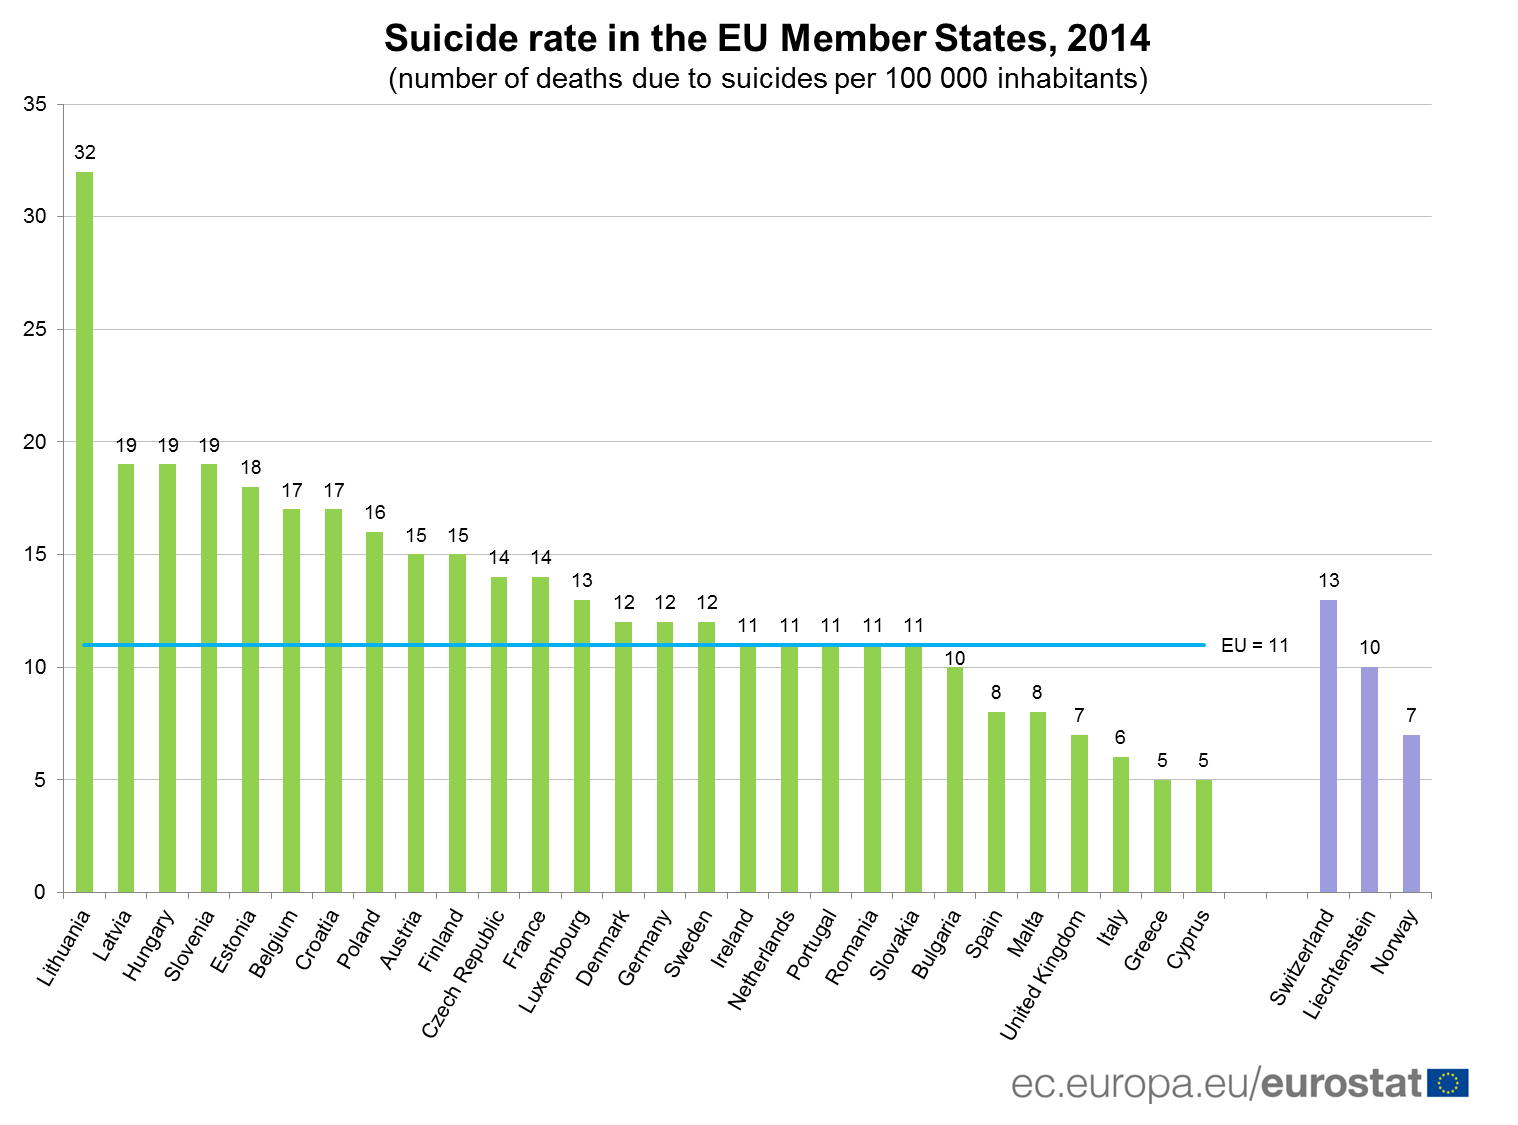 Suicide Rate in the EU Member States in 2014